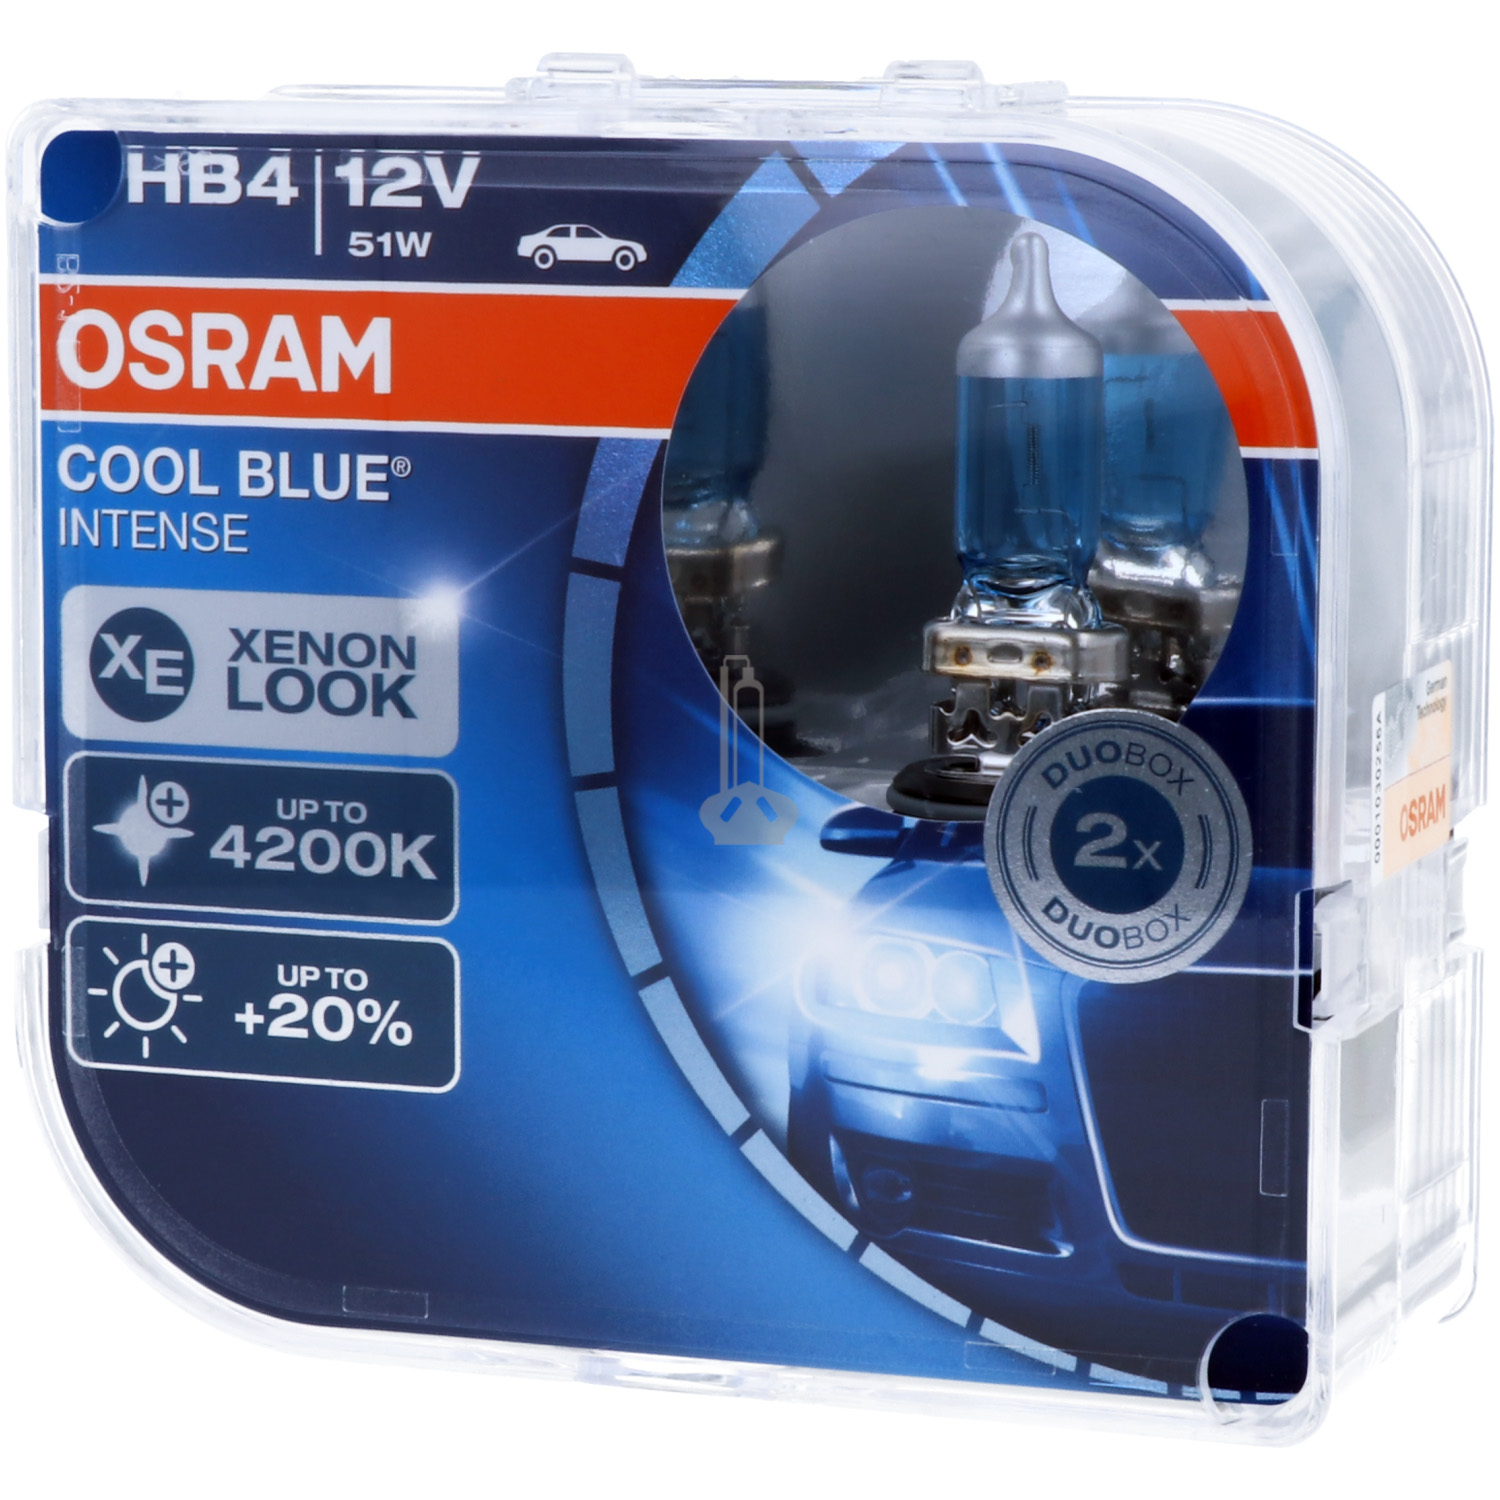 OSRAM Cool Blue Intense - Stylischer Look B-Ware